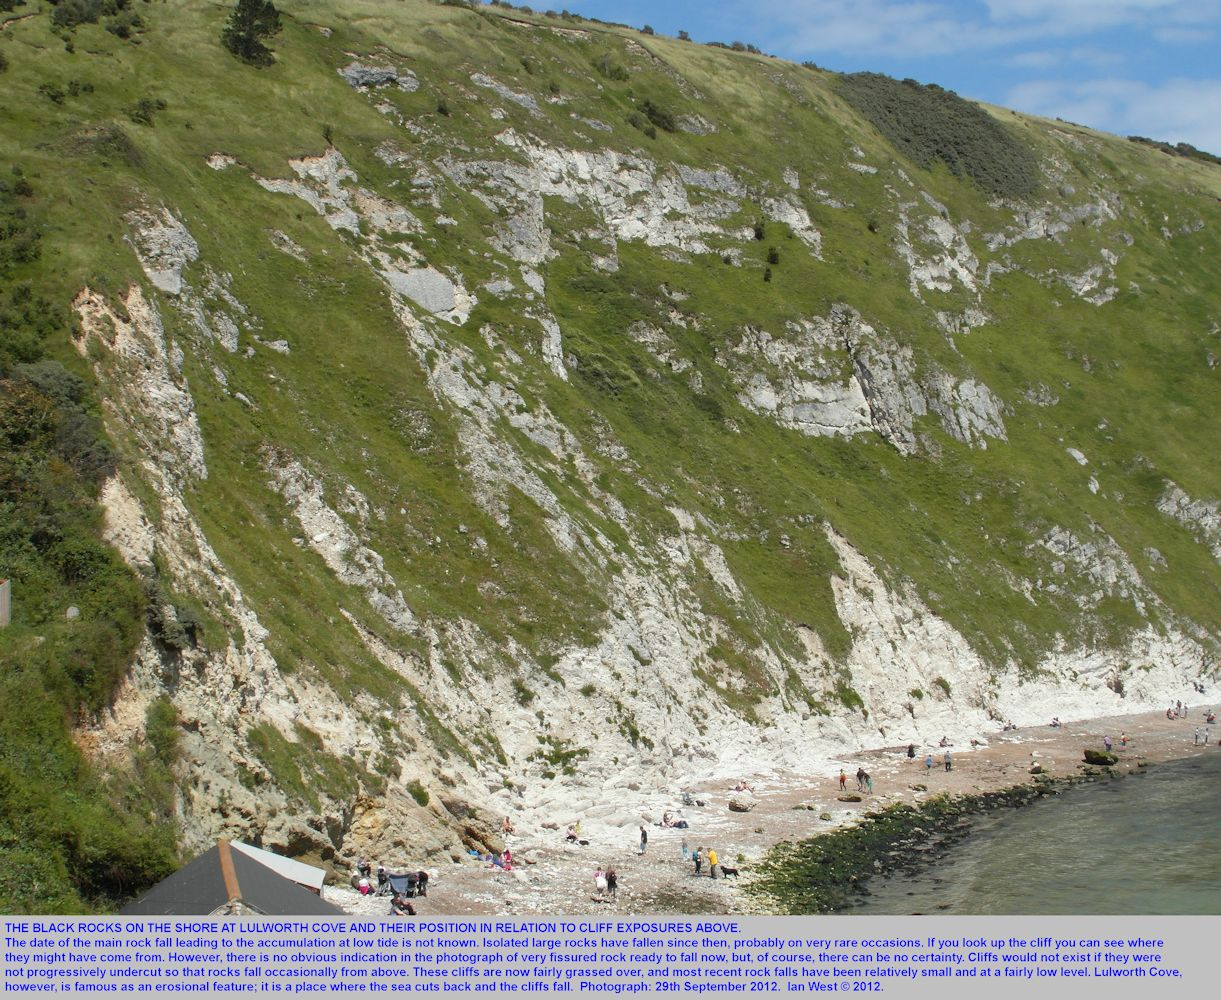 Black Rocks and the apparent source area in the cliffs above the major fault, Lulworth Cove, Dorset, 29th September 2012